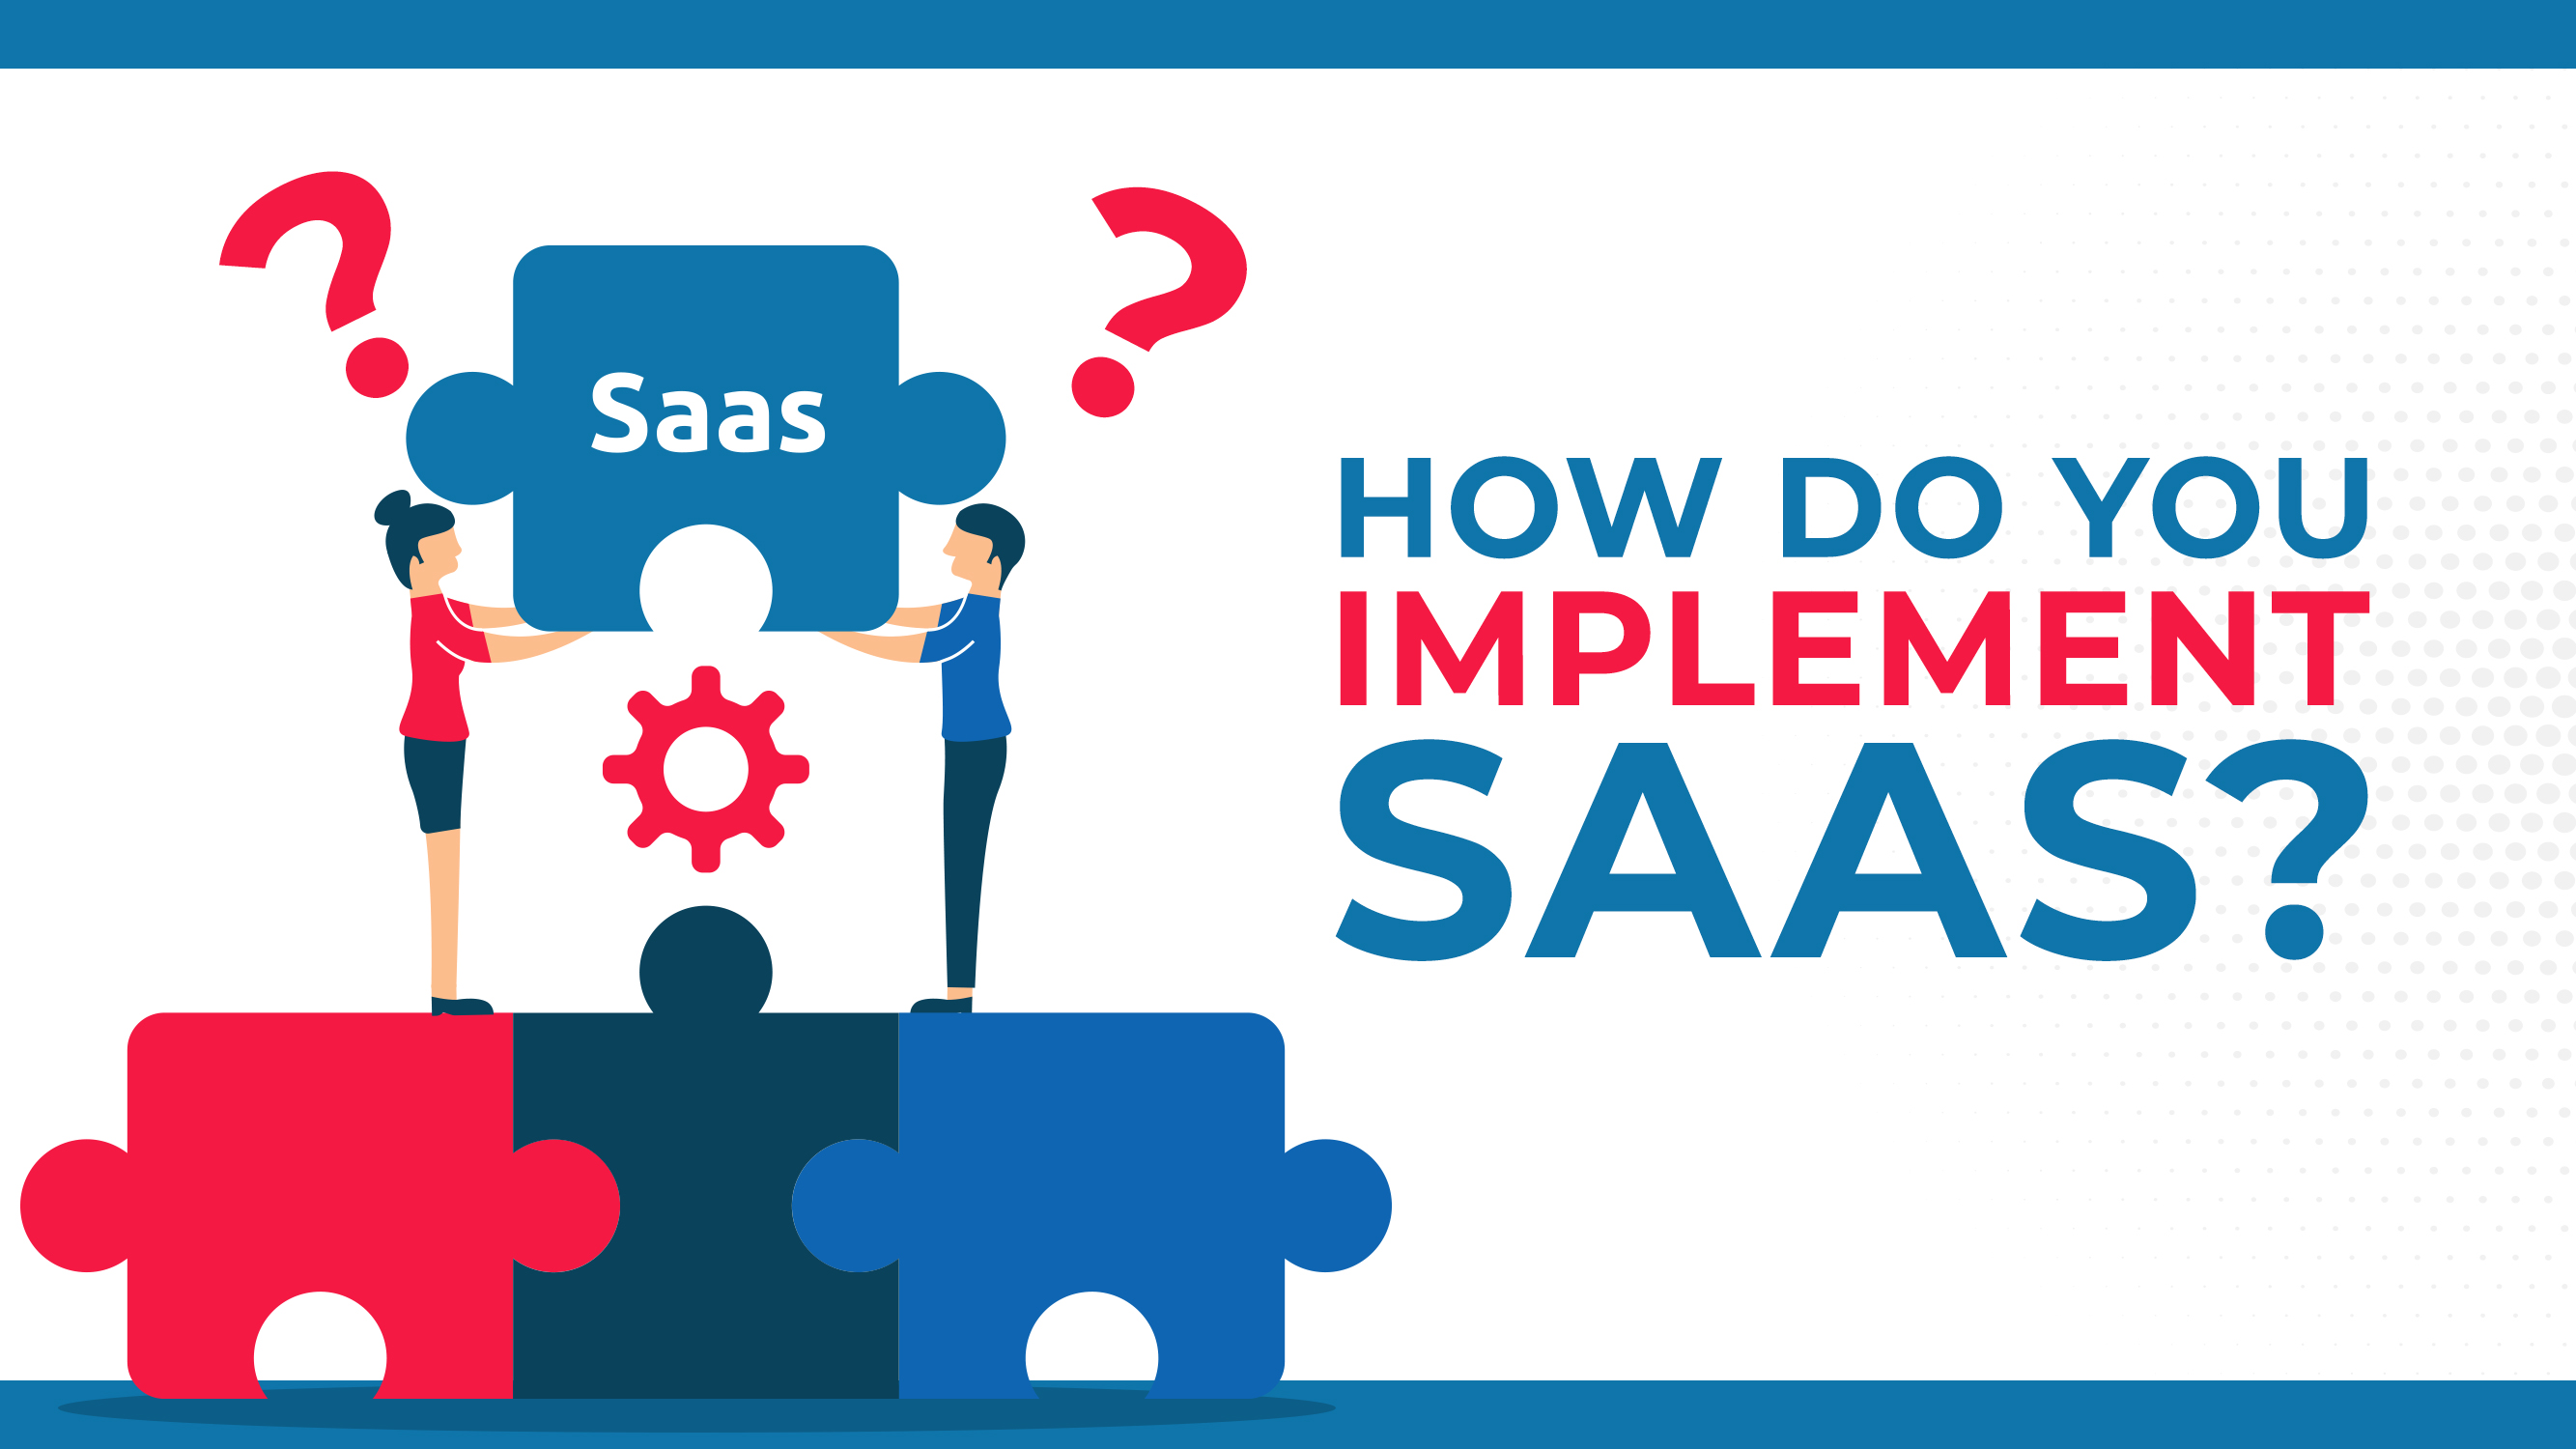 Come implementate il SAAS?